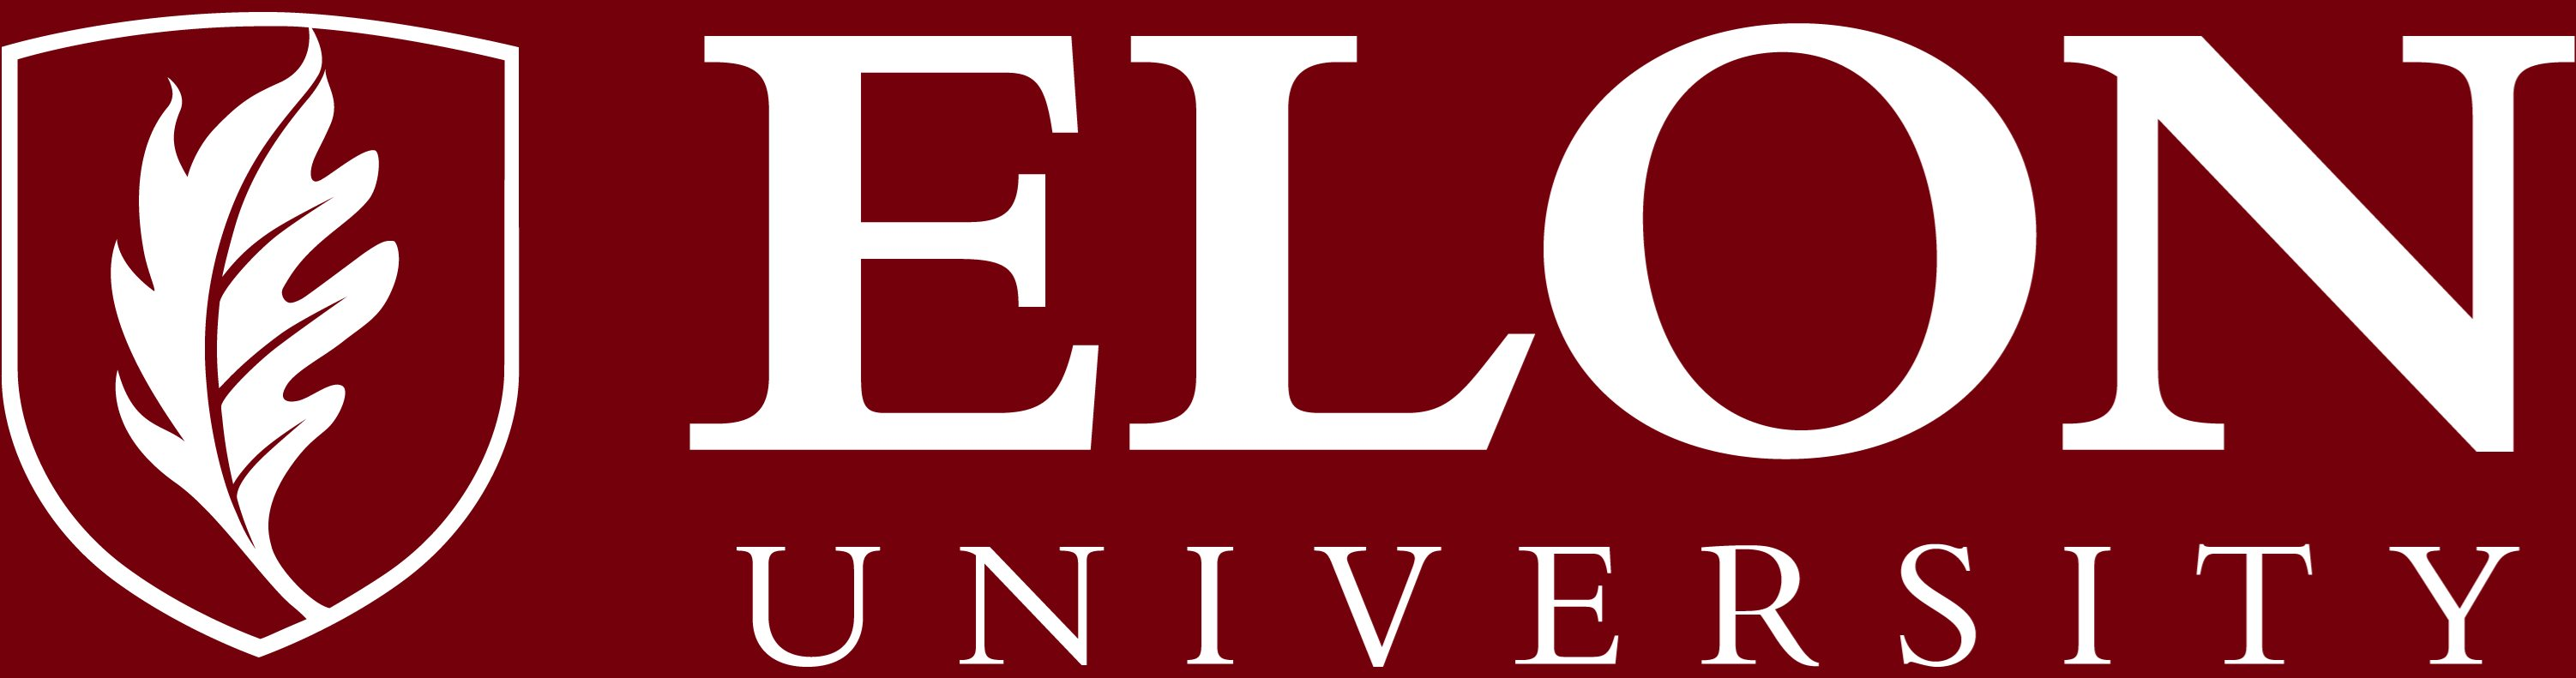 Elon University primary signature one-color reversed example